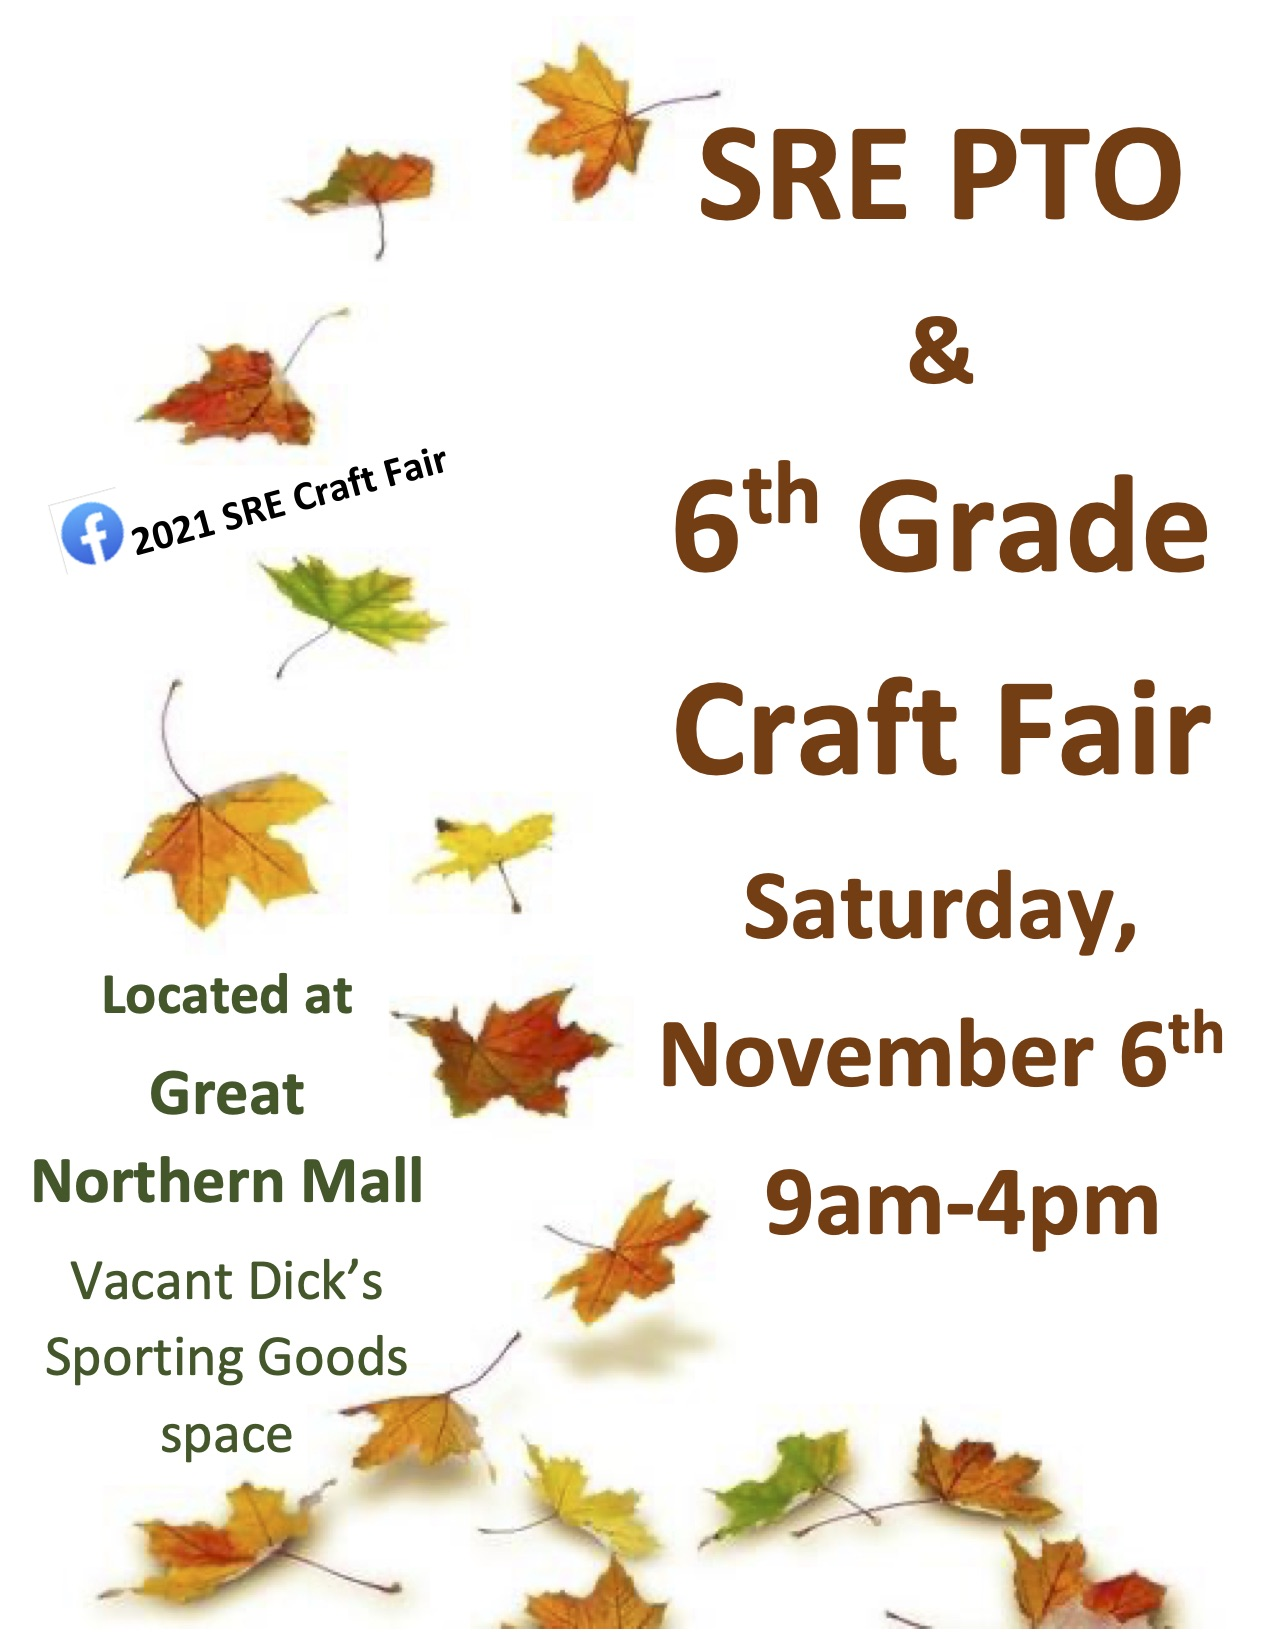 Soule Road Elementary Arts and Craft Show for 6th grade Great Northern Mall information and falling leaves.